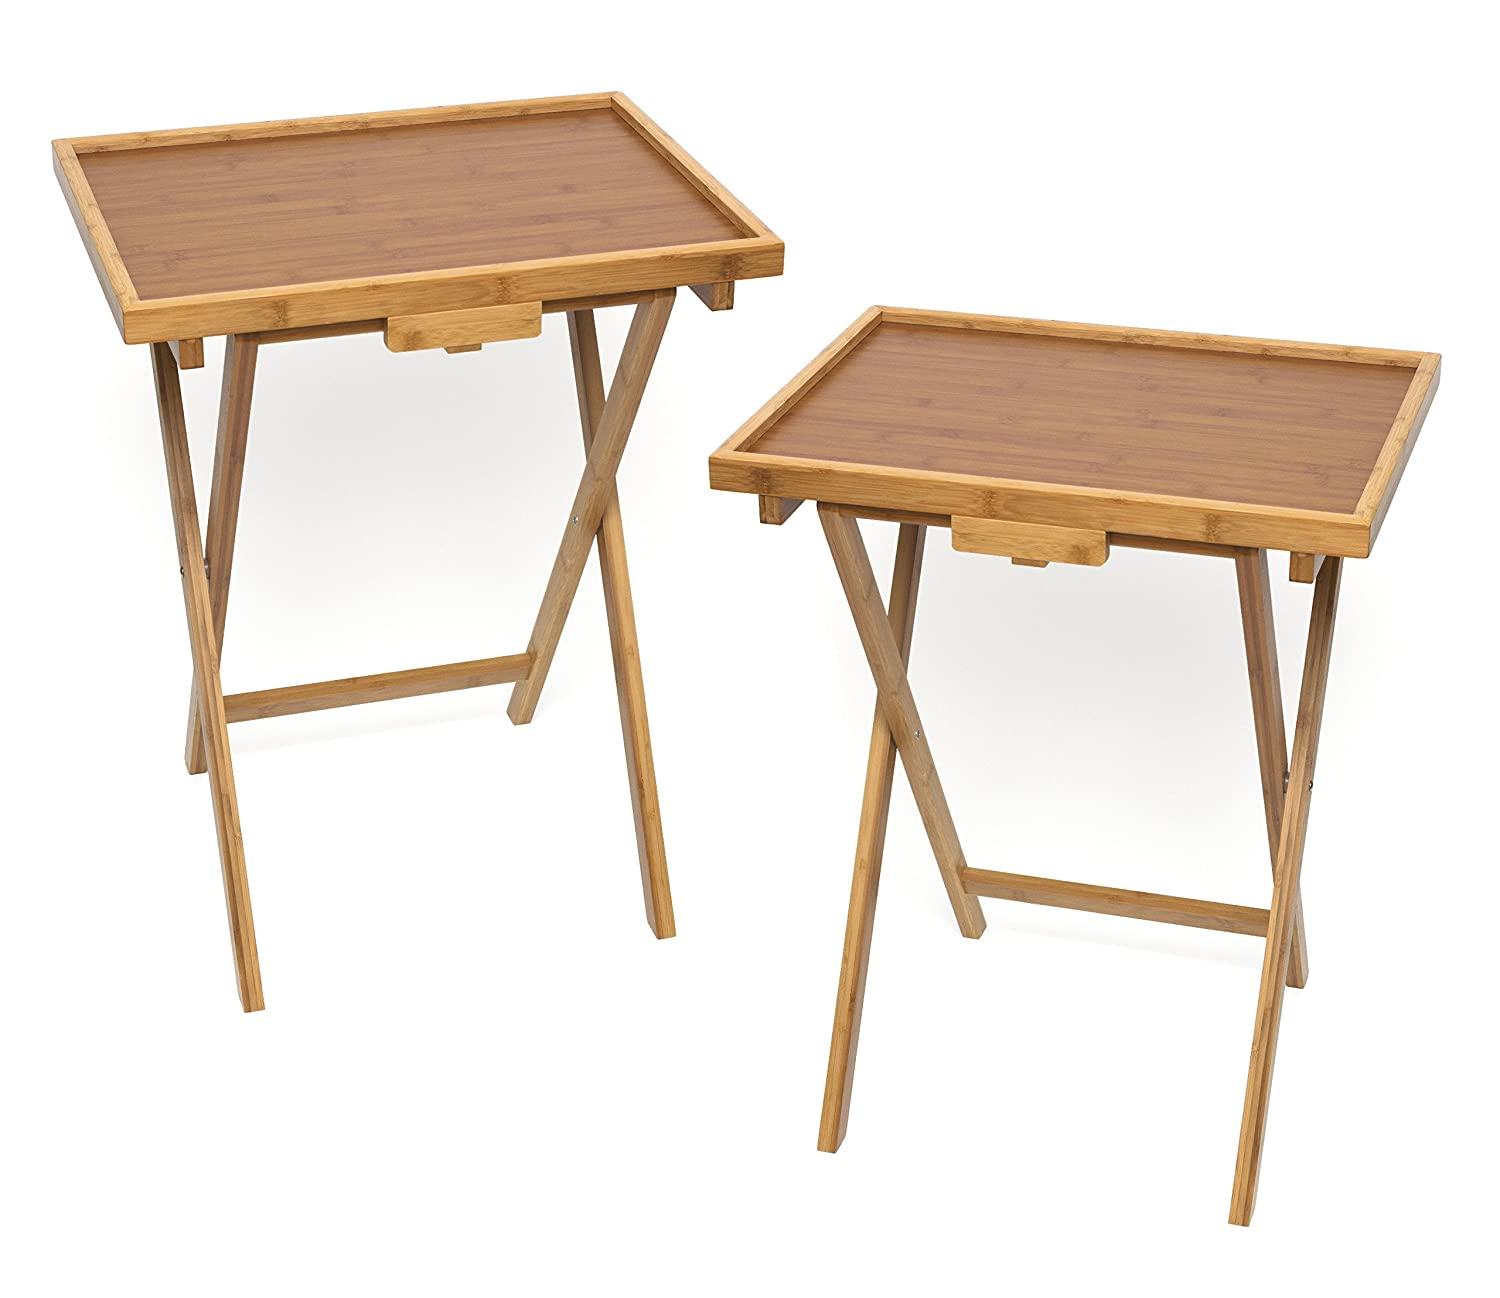 Lipper International Bamboo Lipped Snack Table, Set of Two, Bamboo 801-2